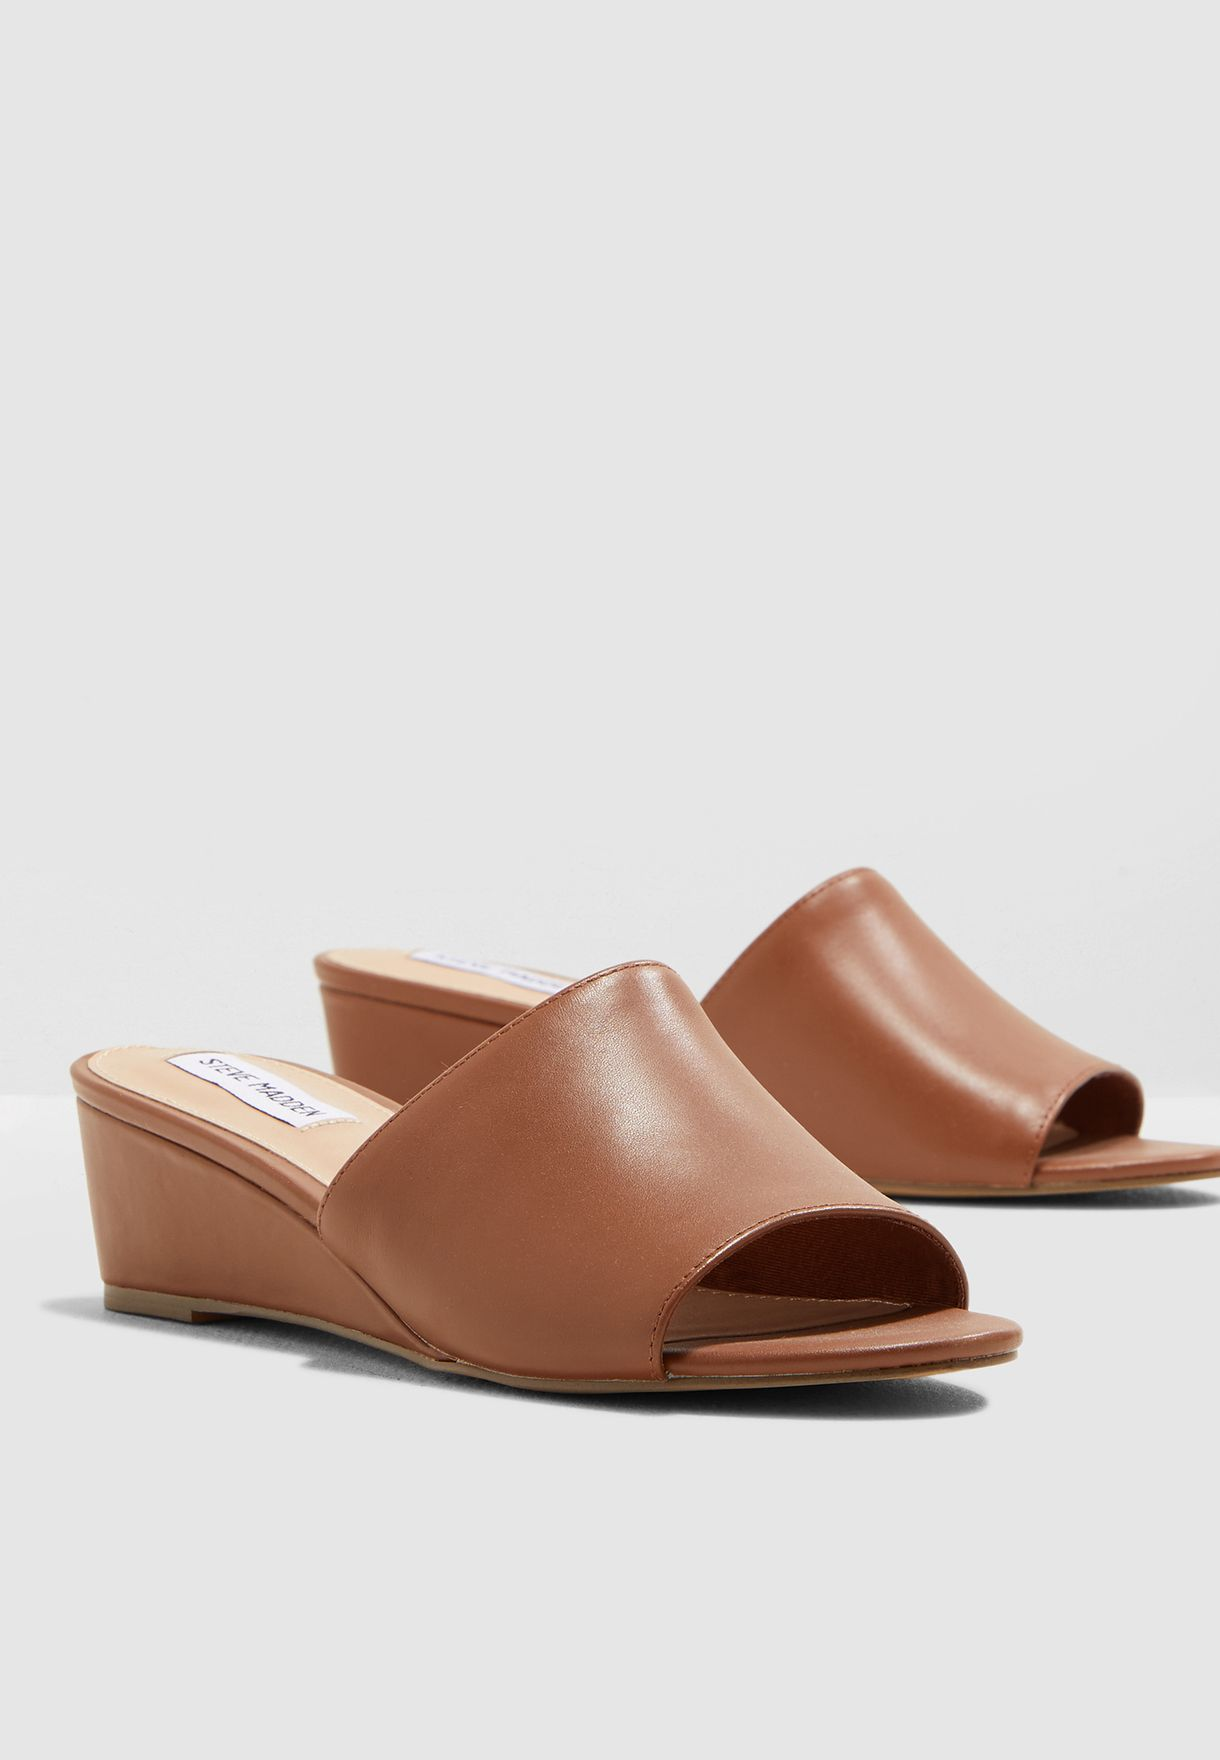 Loft Wedge Sandal